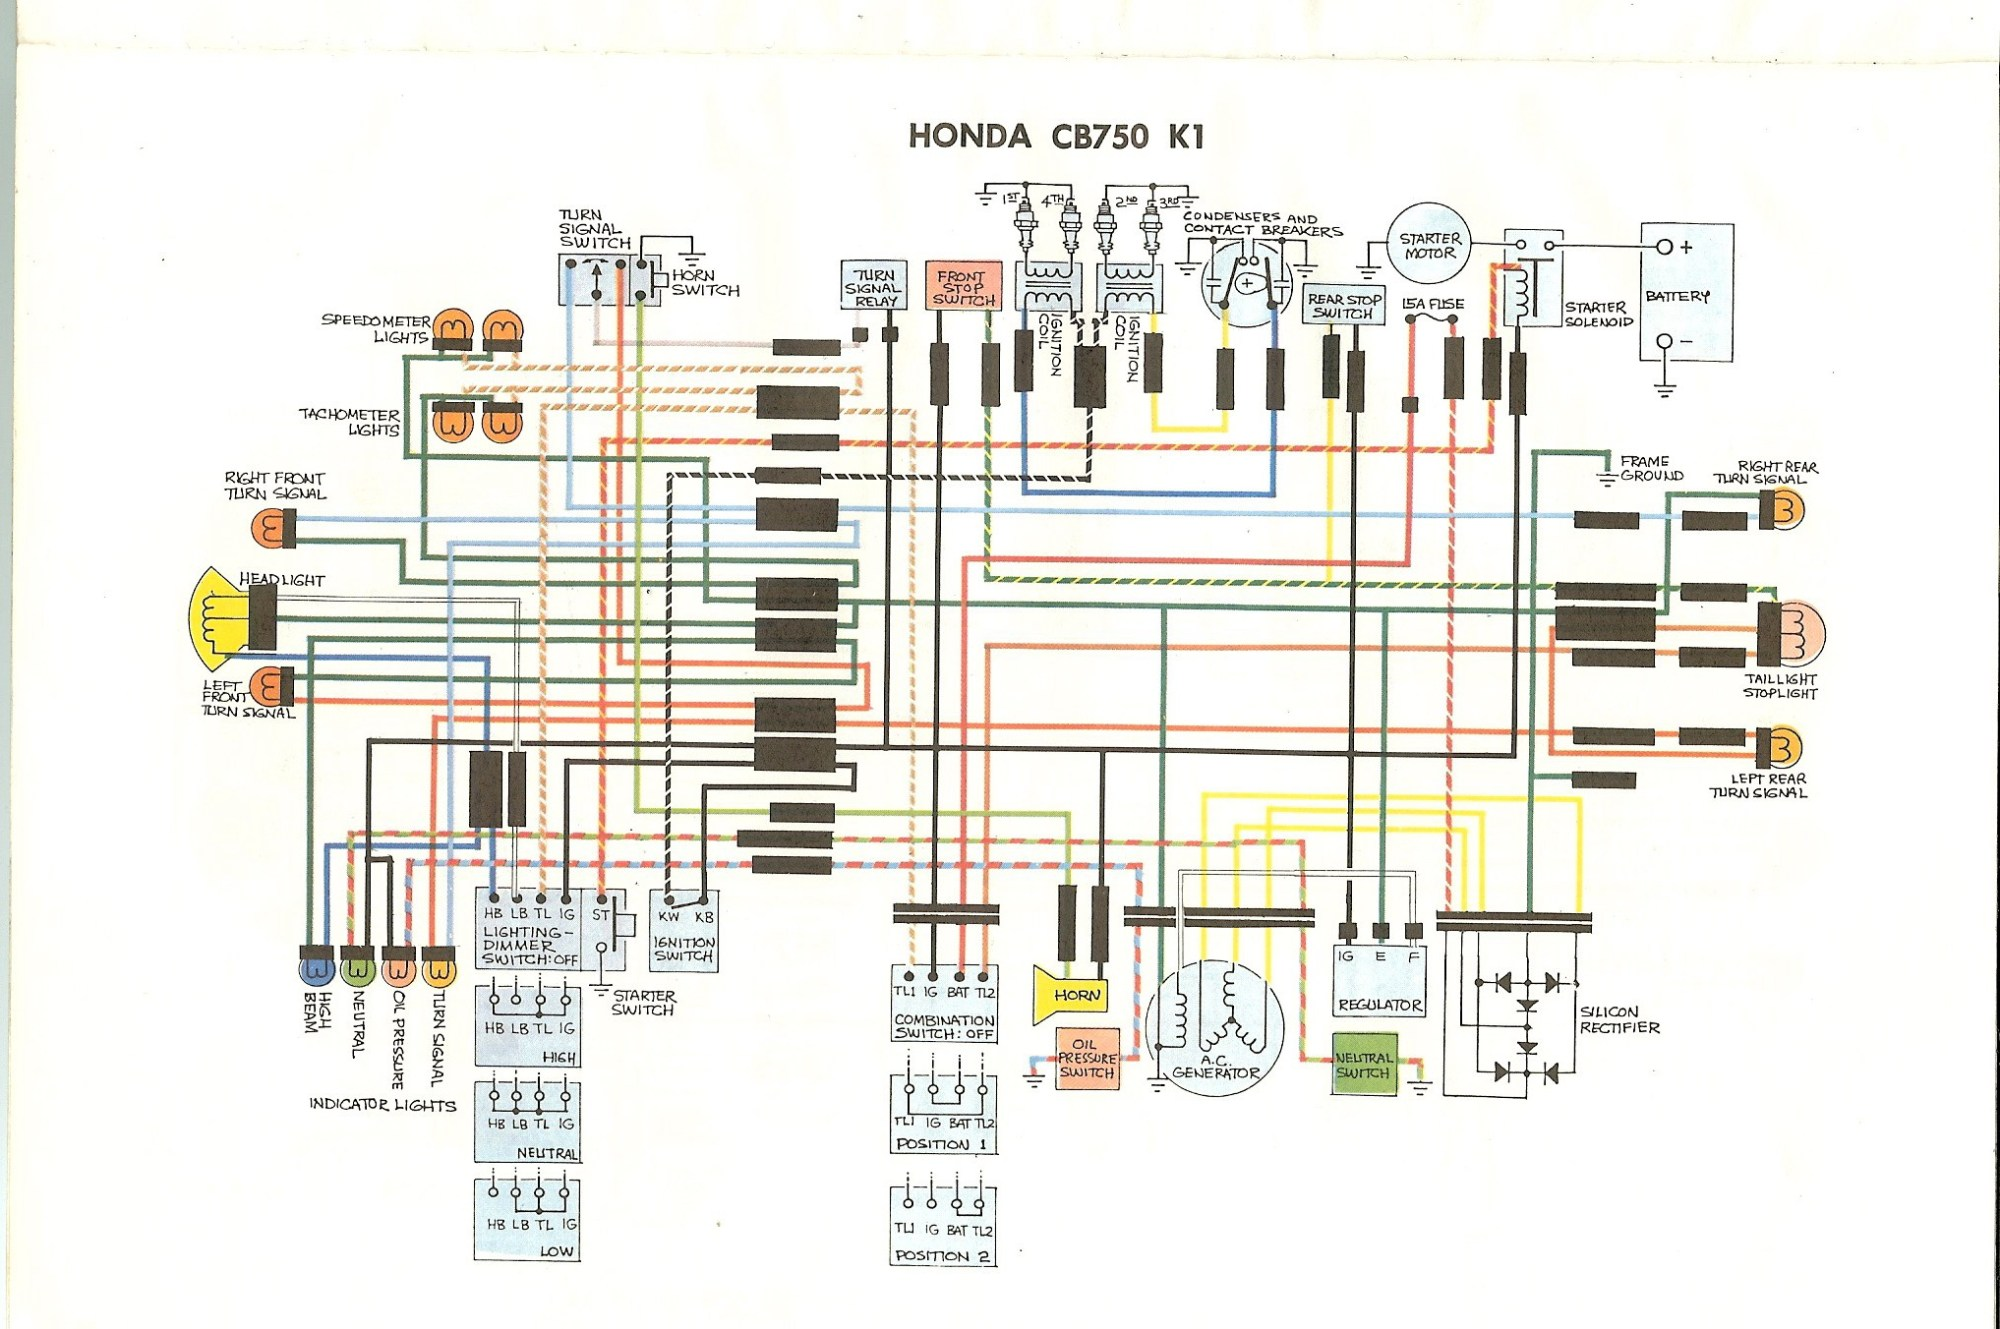 hight resolution of 1978 honda cb750k wiring diagram wiring library wiring diagram also 1976 honda cb750 wiring diagram on cb 750 wiring